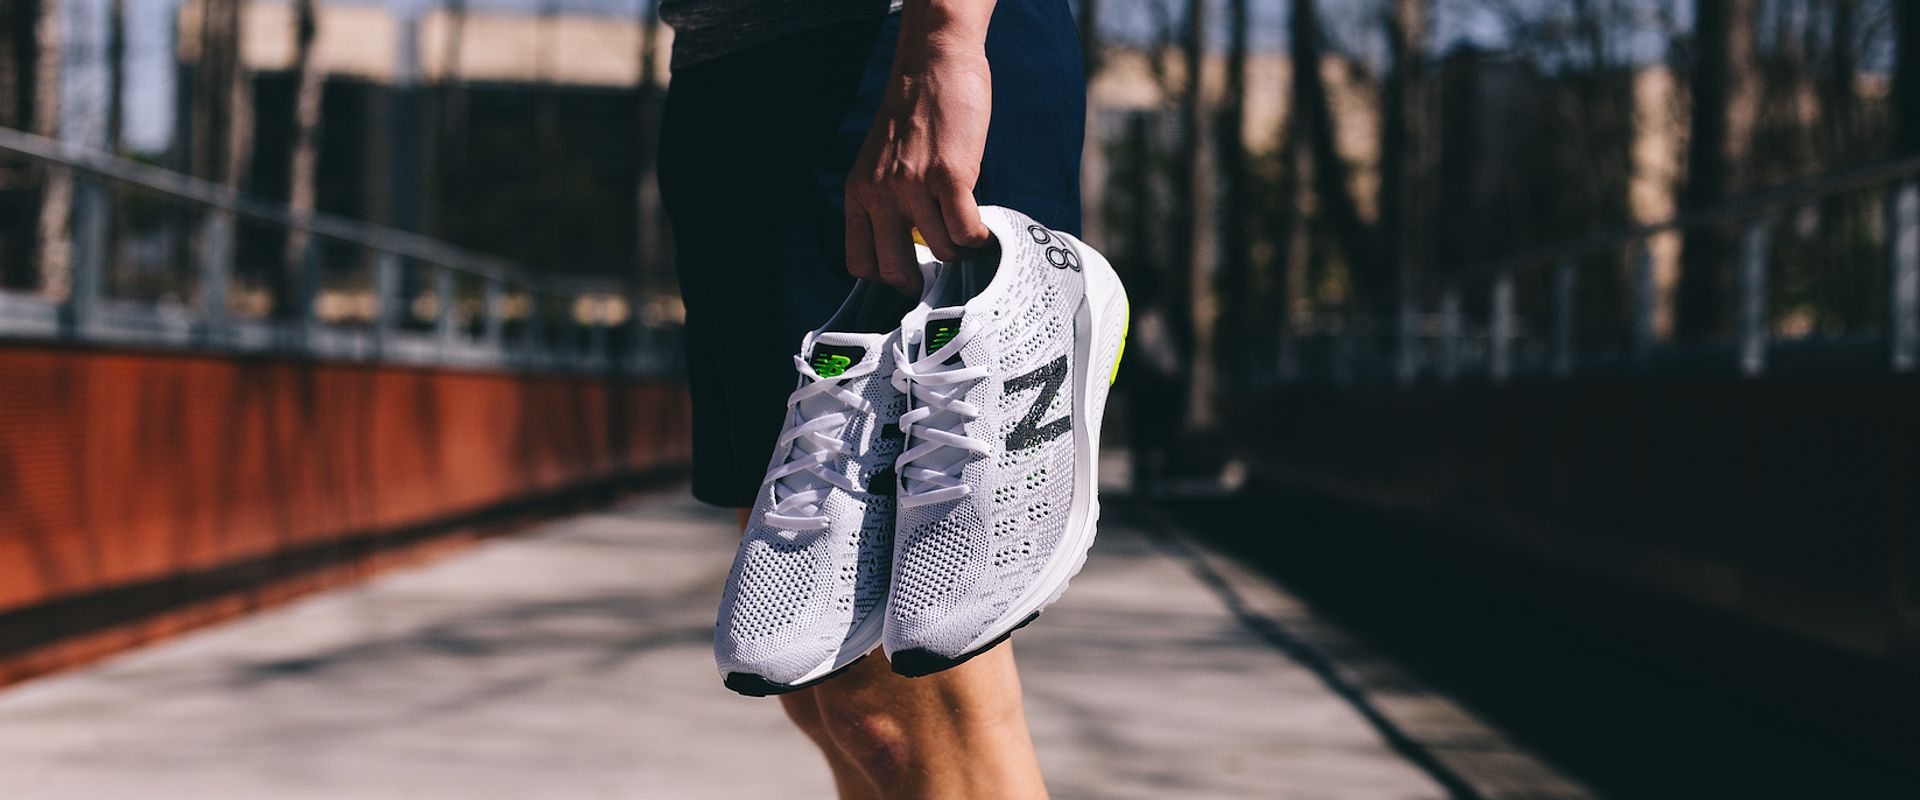 Shoe Review: New Balance 890v7 | Fleet Feet